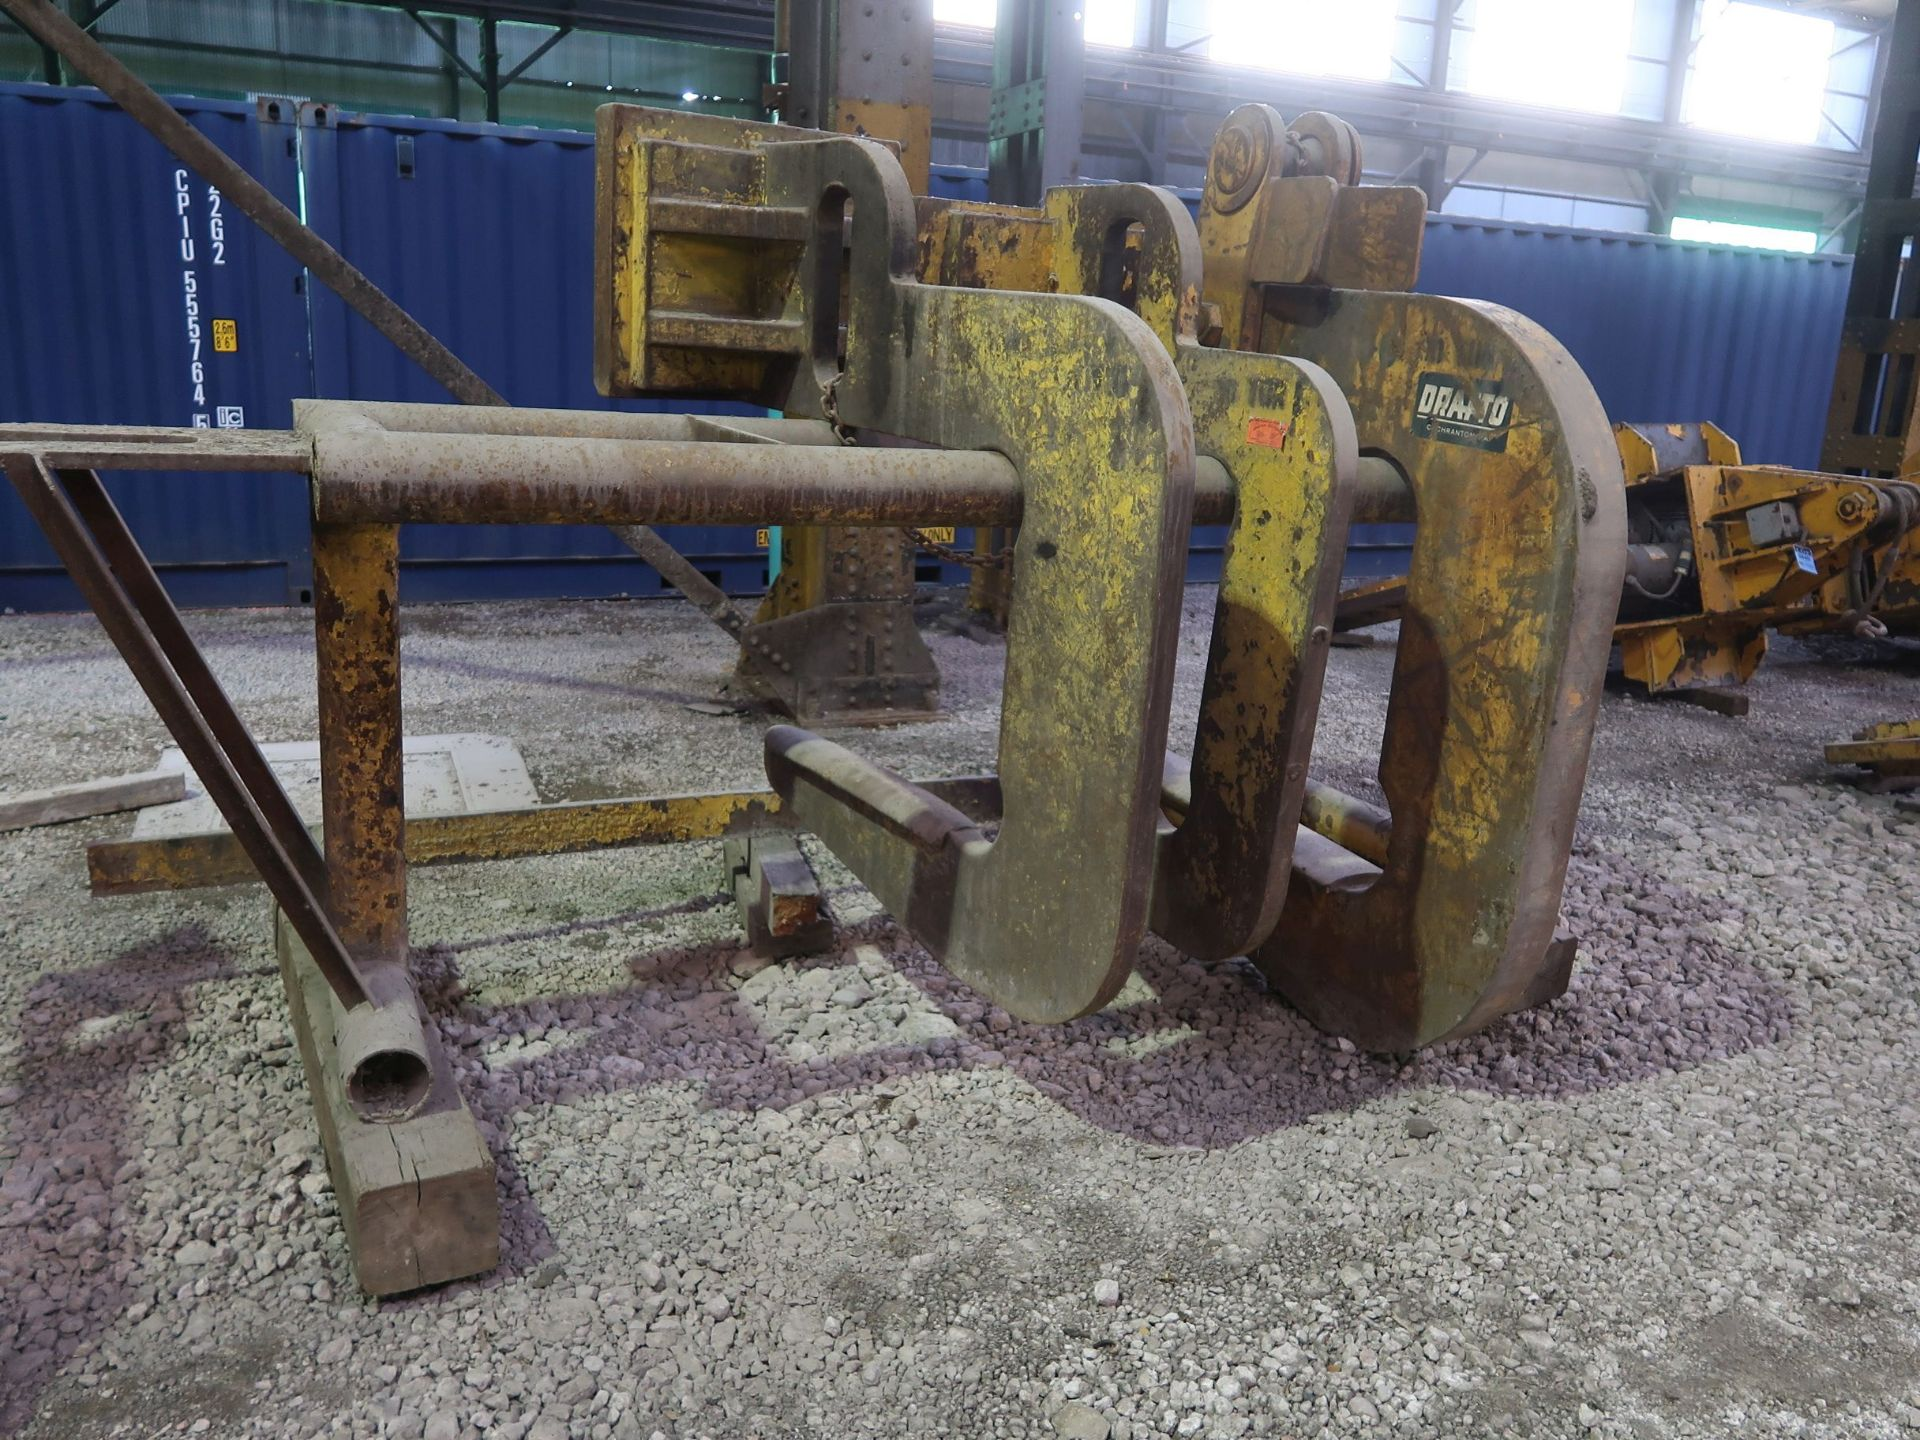 Lot 443 - LARGE CAPACITY CRANE C-TYPE COIL HOOKS WITH STAND